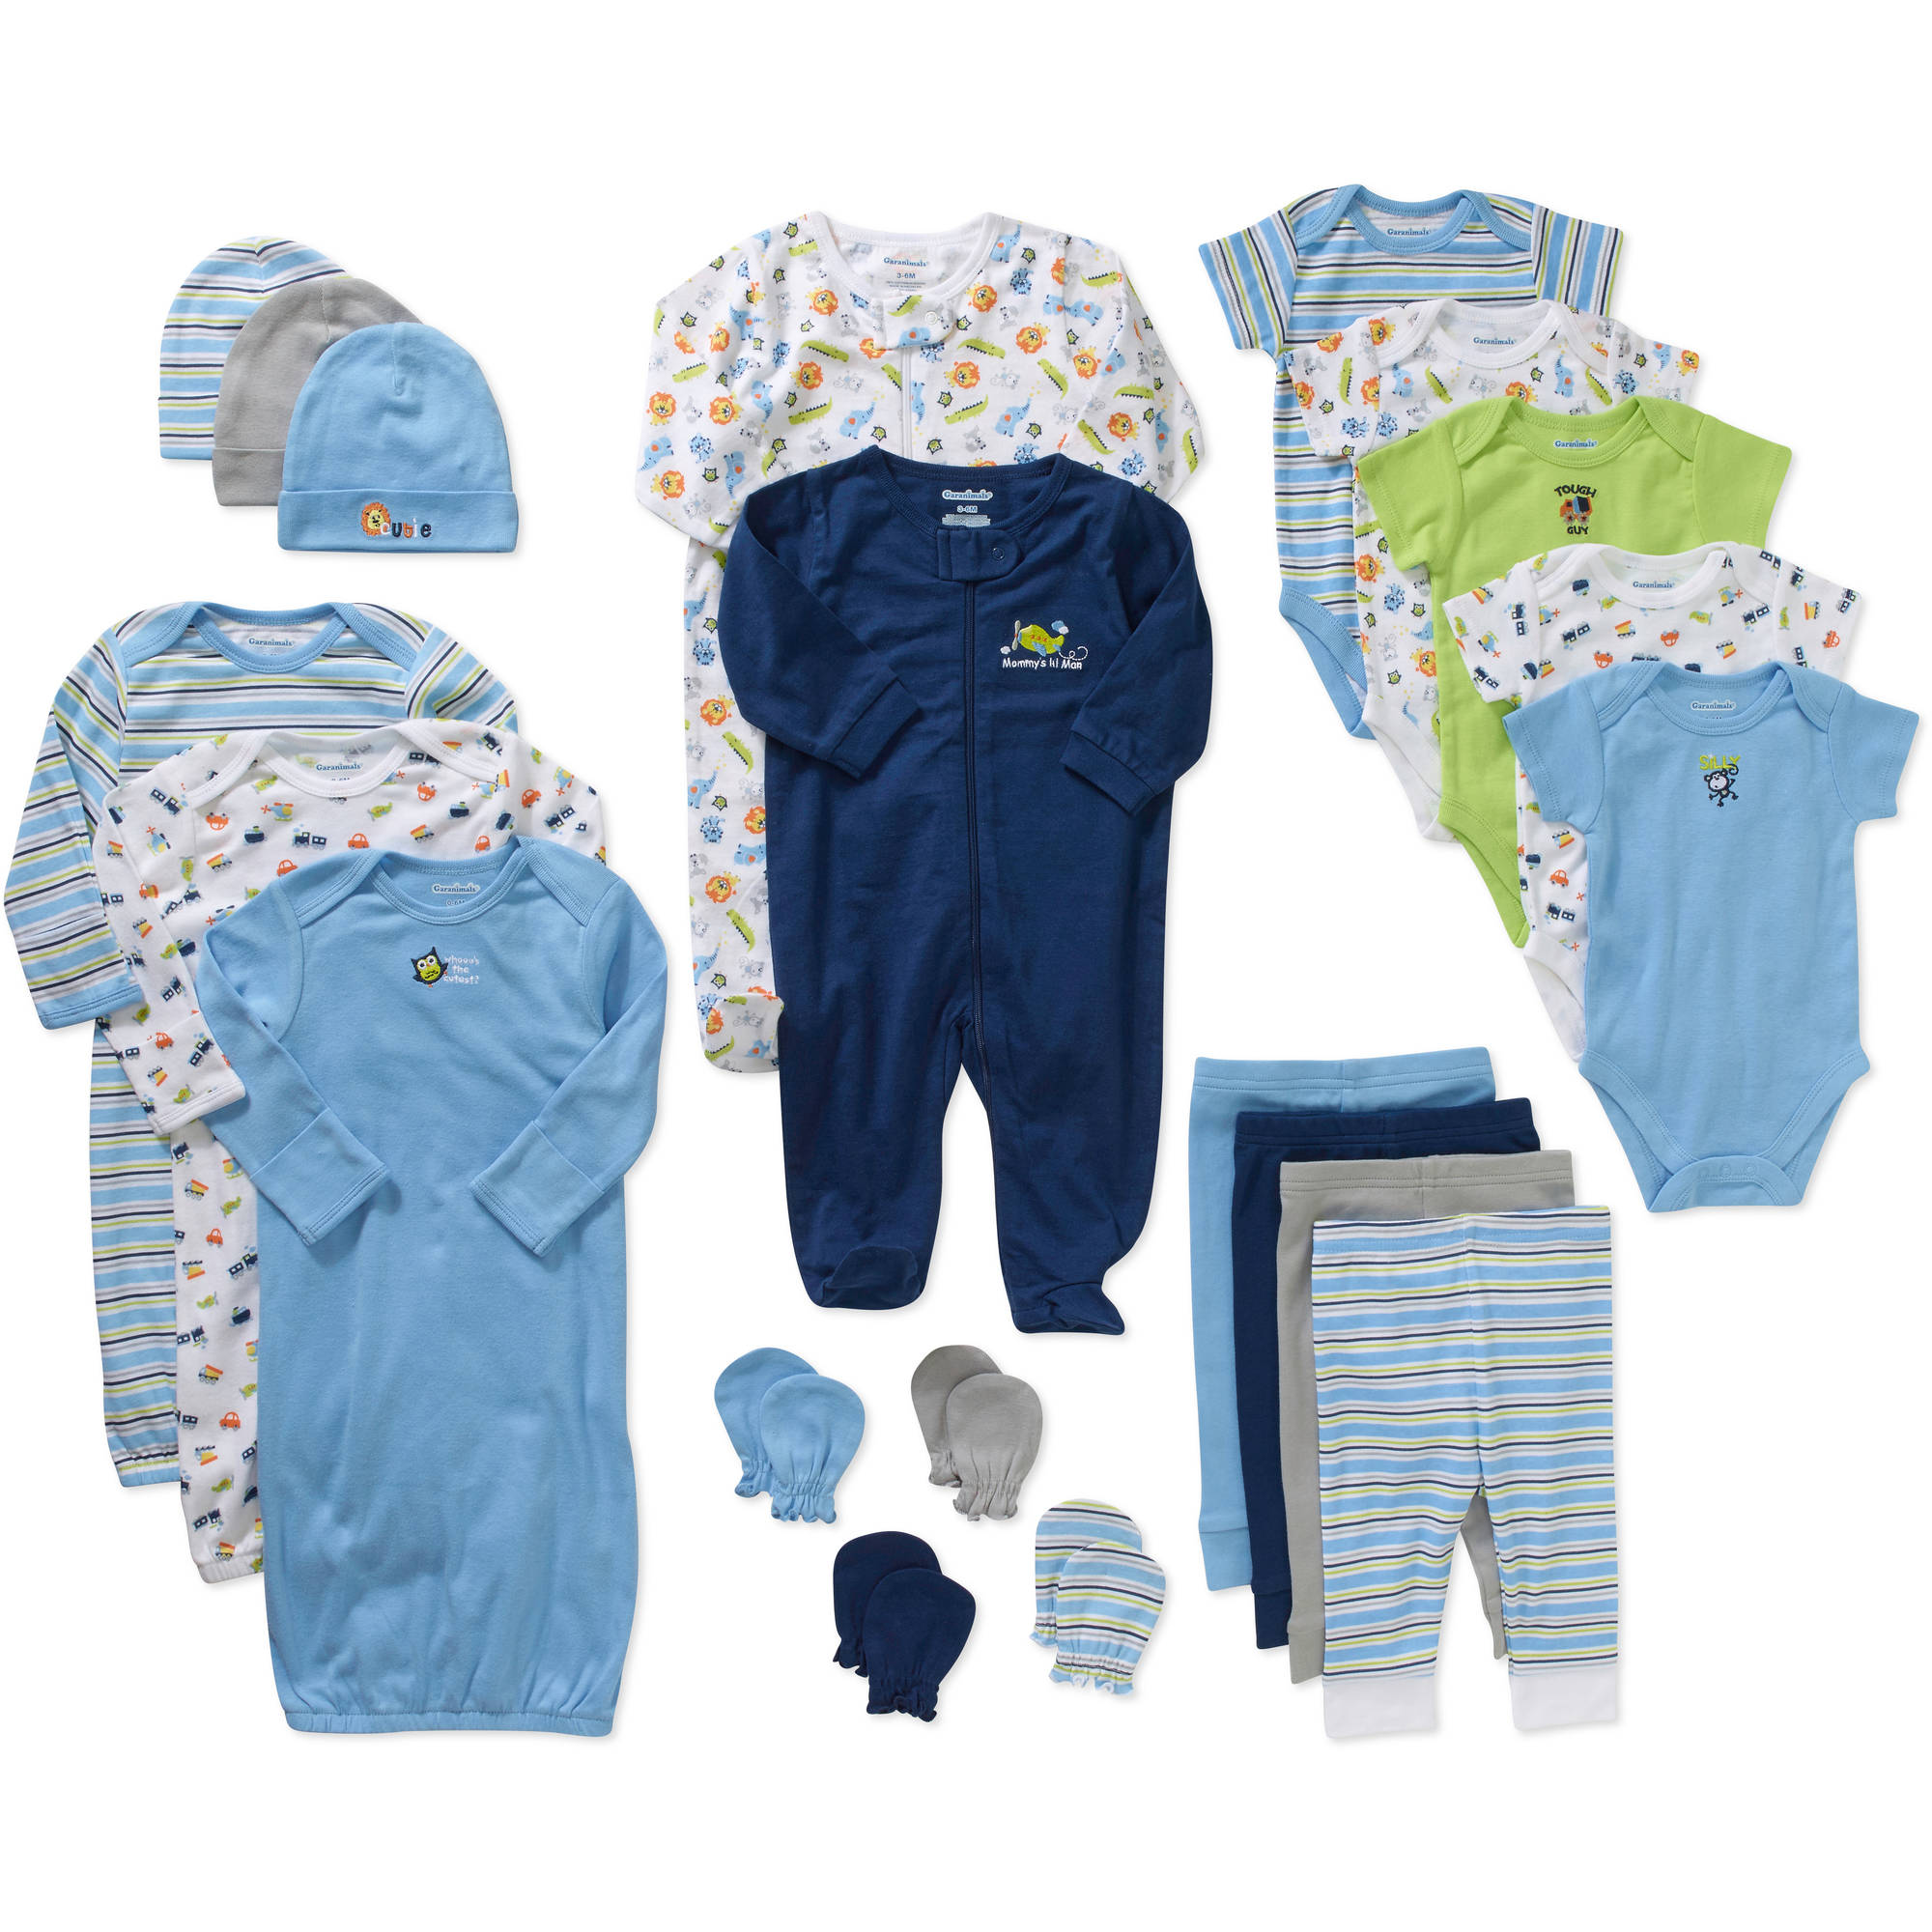 Garanimals Newborn Baby Boy 21 Pc Layette Baby Shower Gift Set   Walmart.com